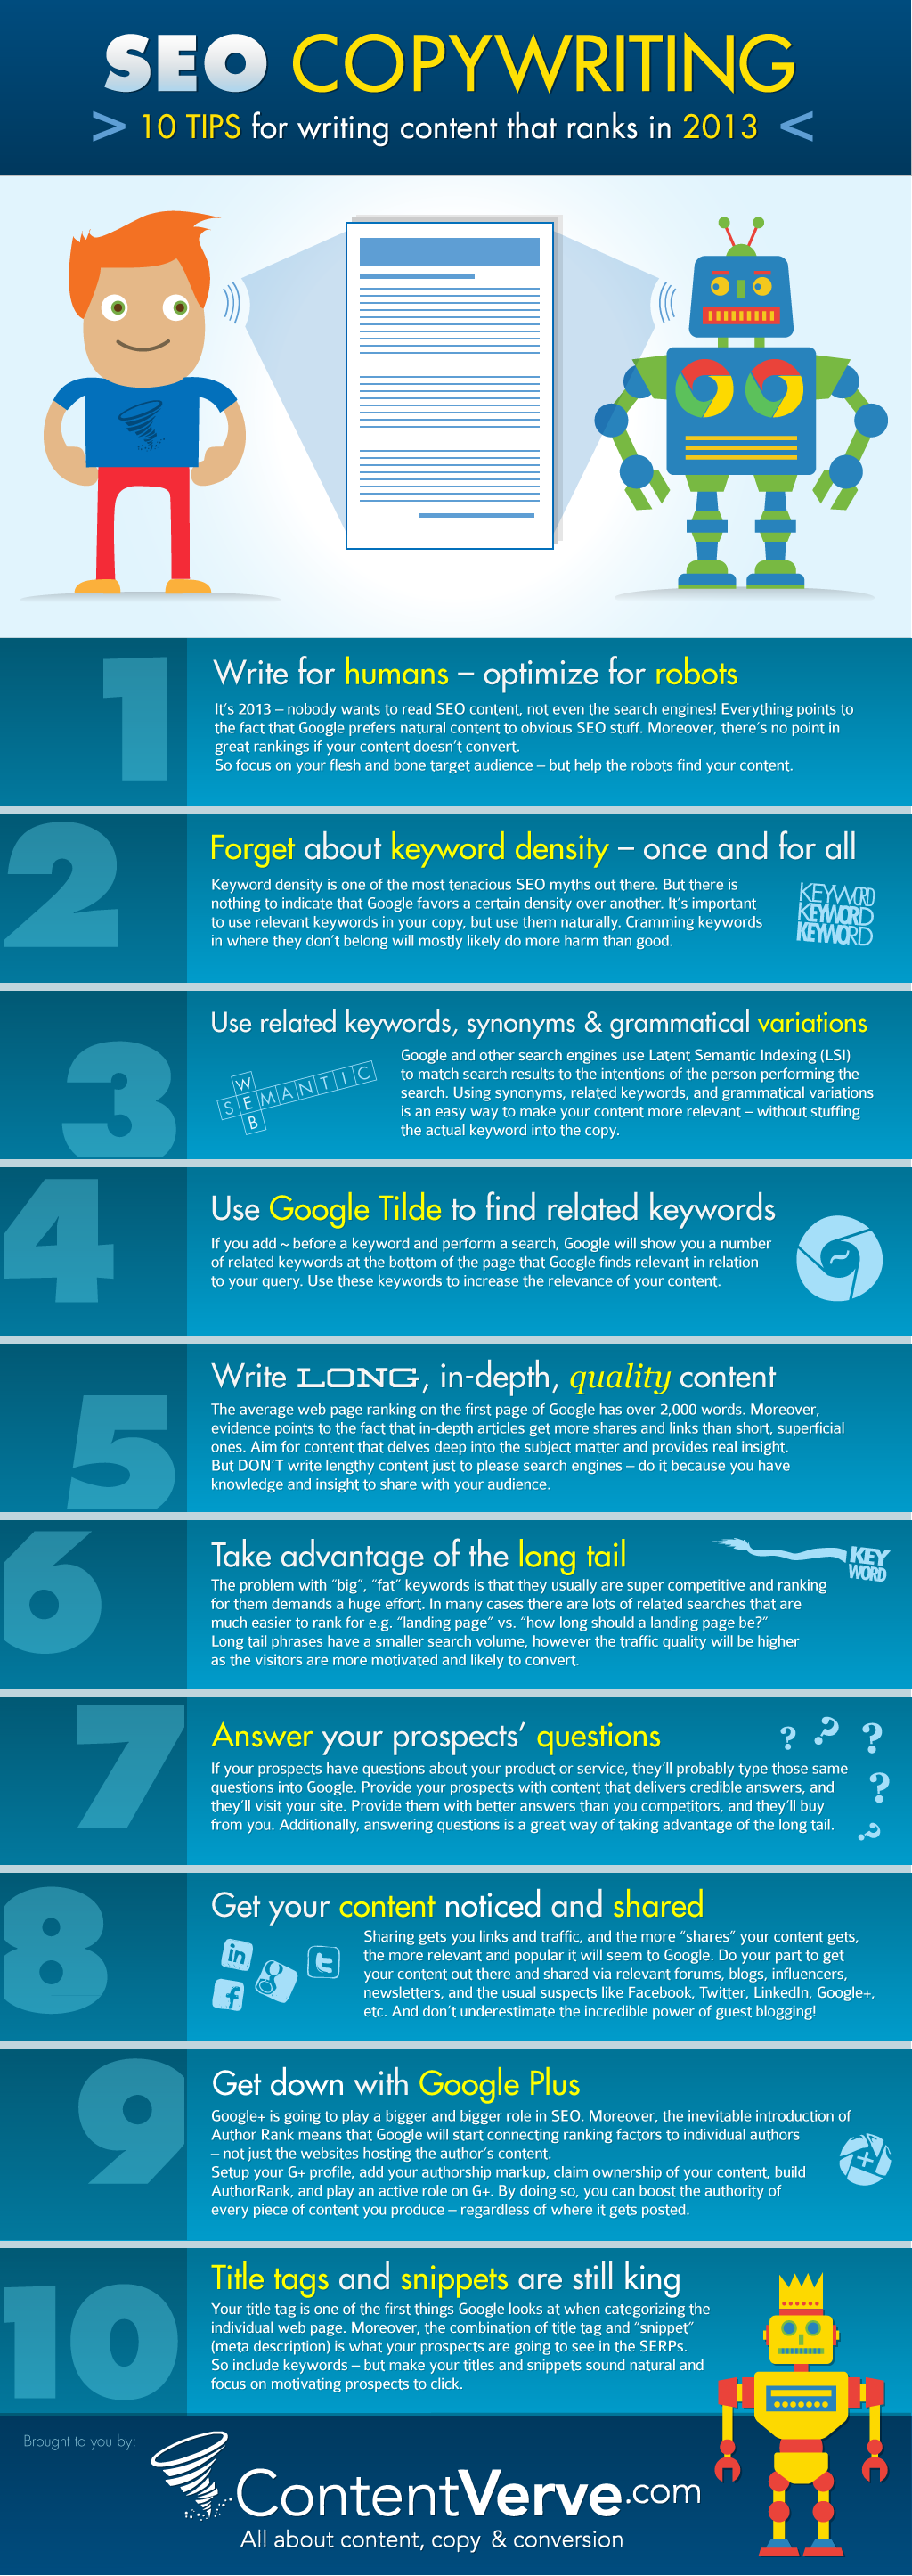 SEO Copywriting – 10 Tips for Writing Content that Ranks in 2013 (Infographic)